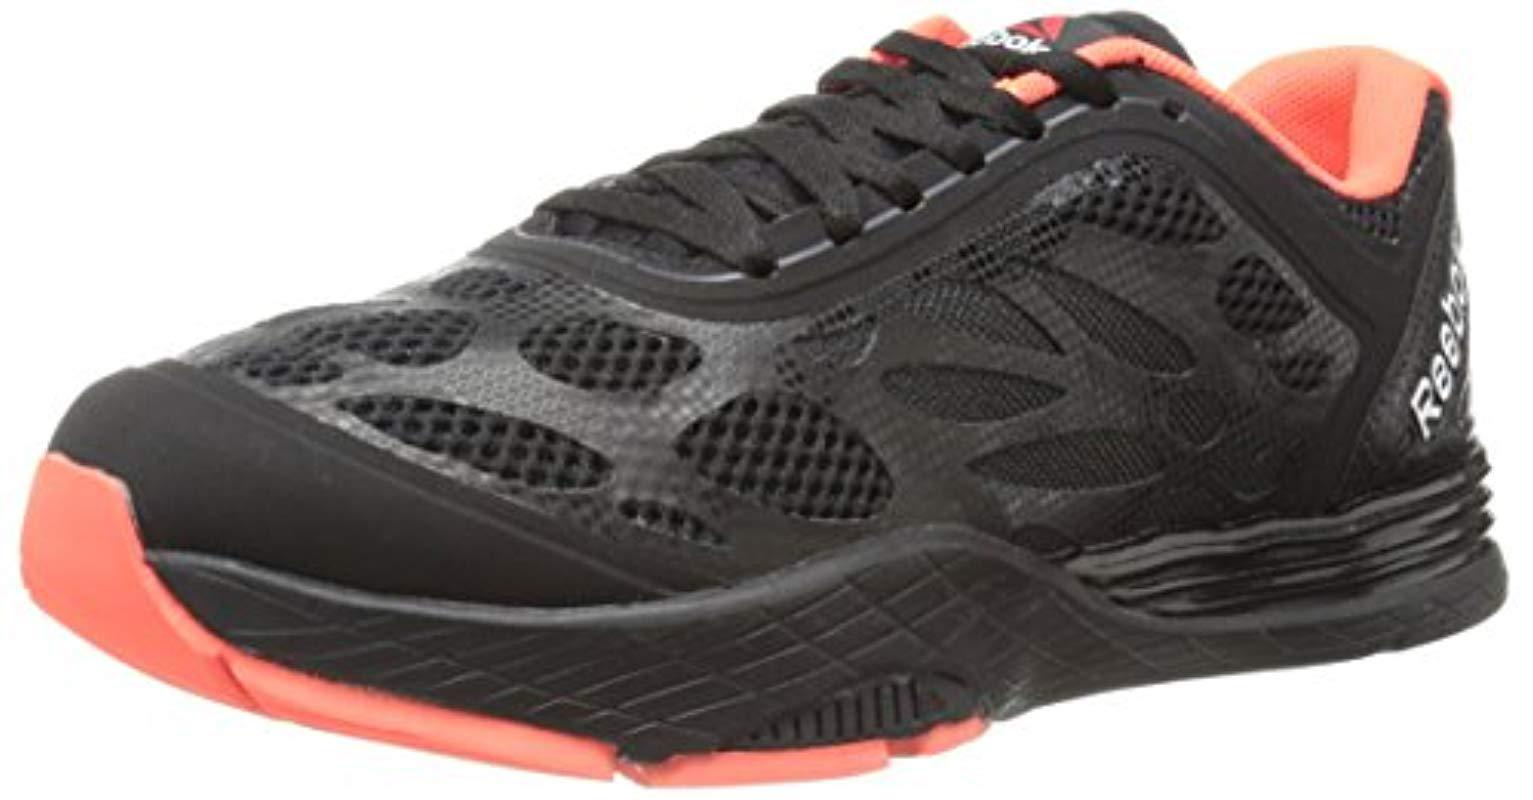 release date e269d e316d Lyst - Reebok Cardio Ultra Training Shoe in Black